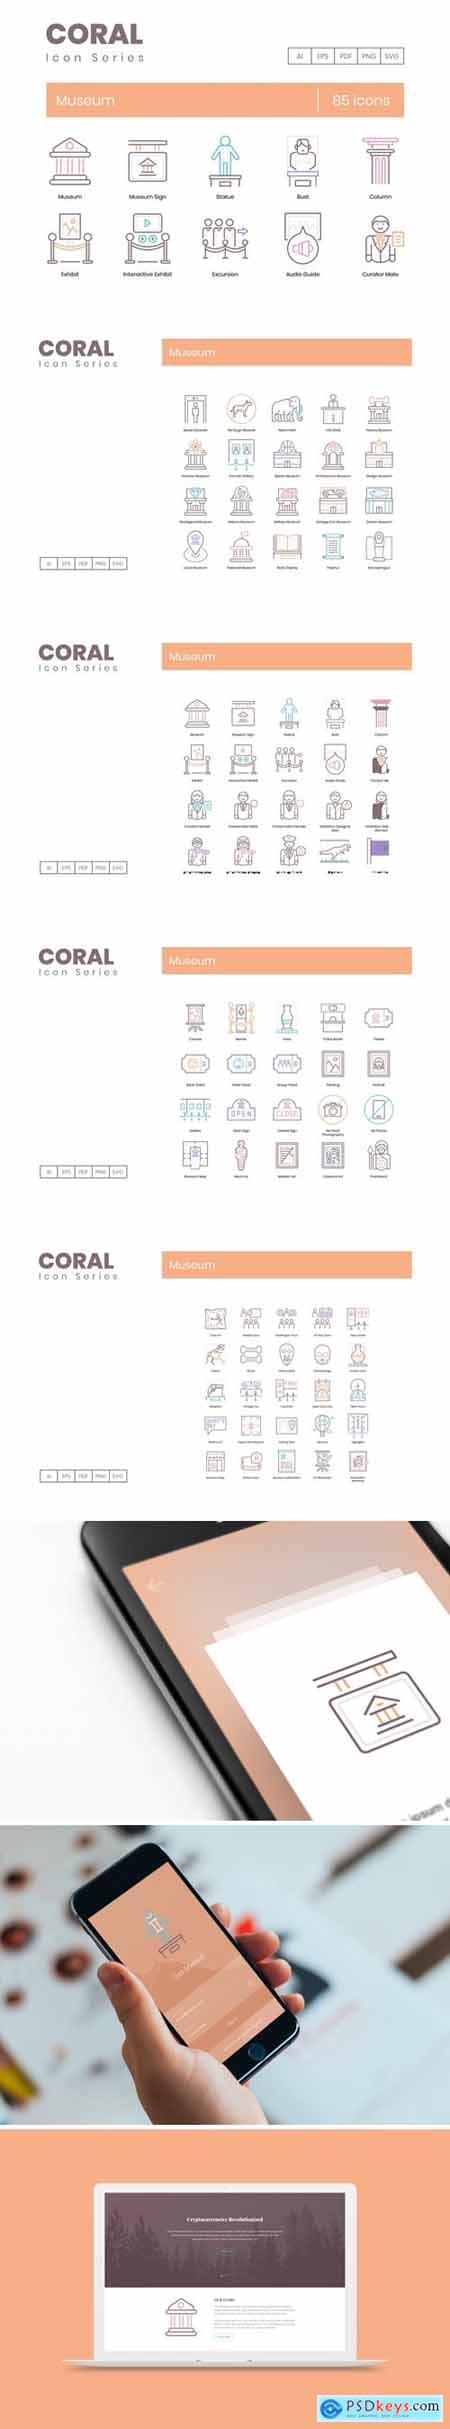 85 Museum Icons - Coral Series